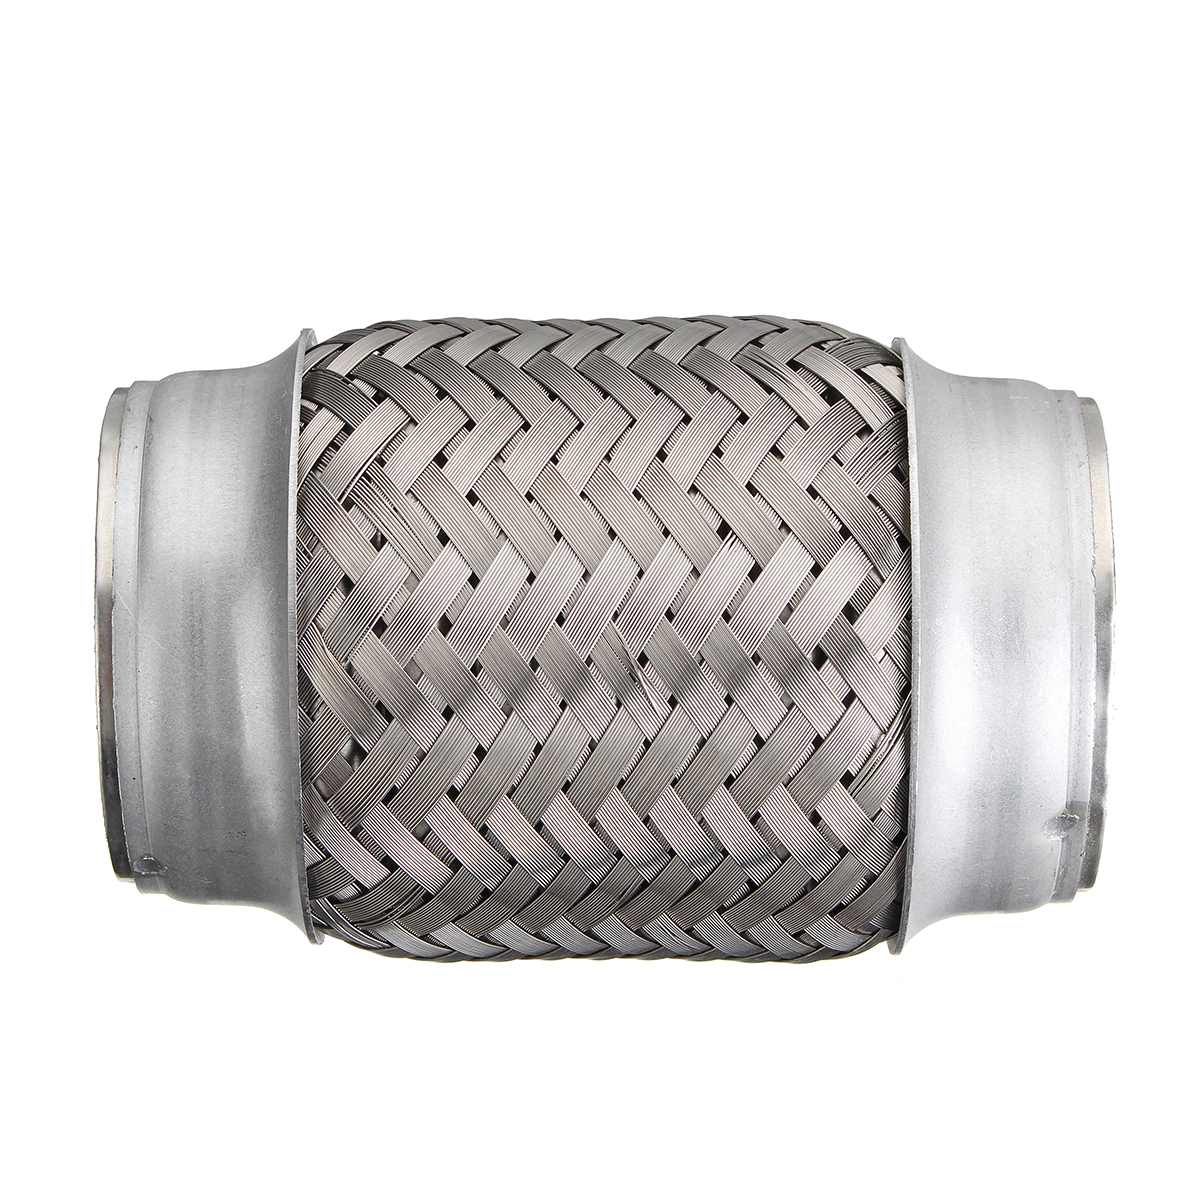 2.5x5 Inch Car Steel Exhaust Pipes Double Braided Flex Connector Adaptor